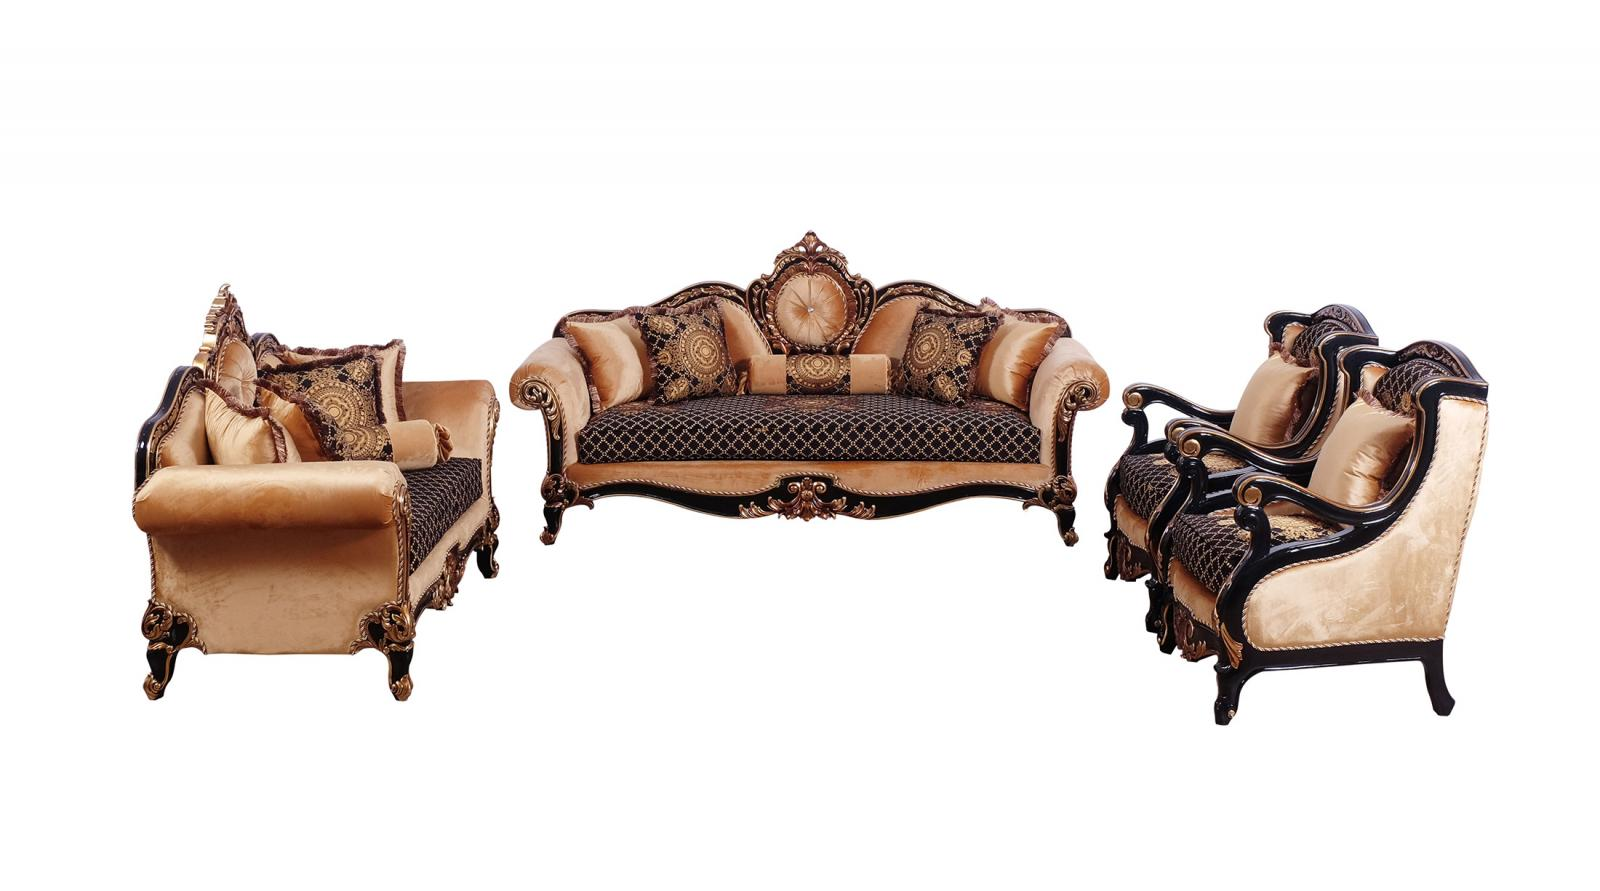 Classic  Traditional Gold  Silver  Antique   Black Wood  Solid Hardwood and Fabric Sofa Set EUROPEAN FURNITURE 41024-S-Set-4